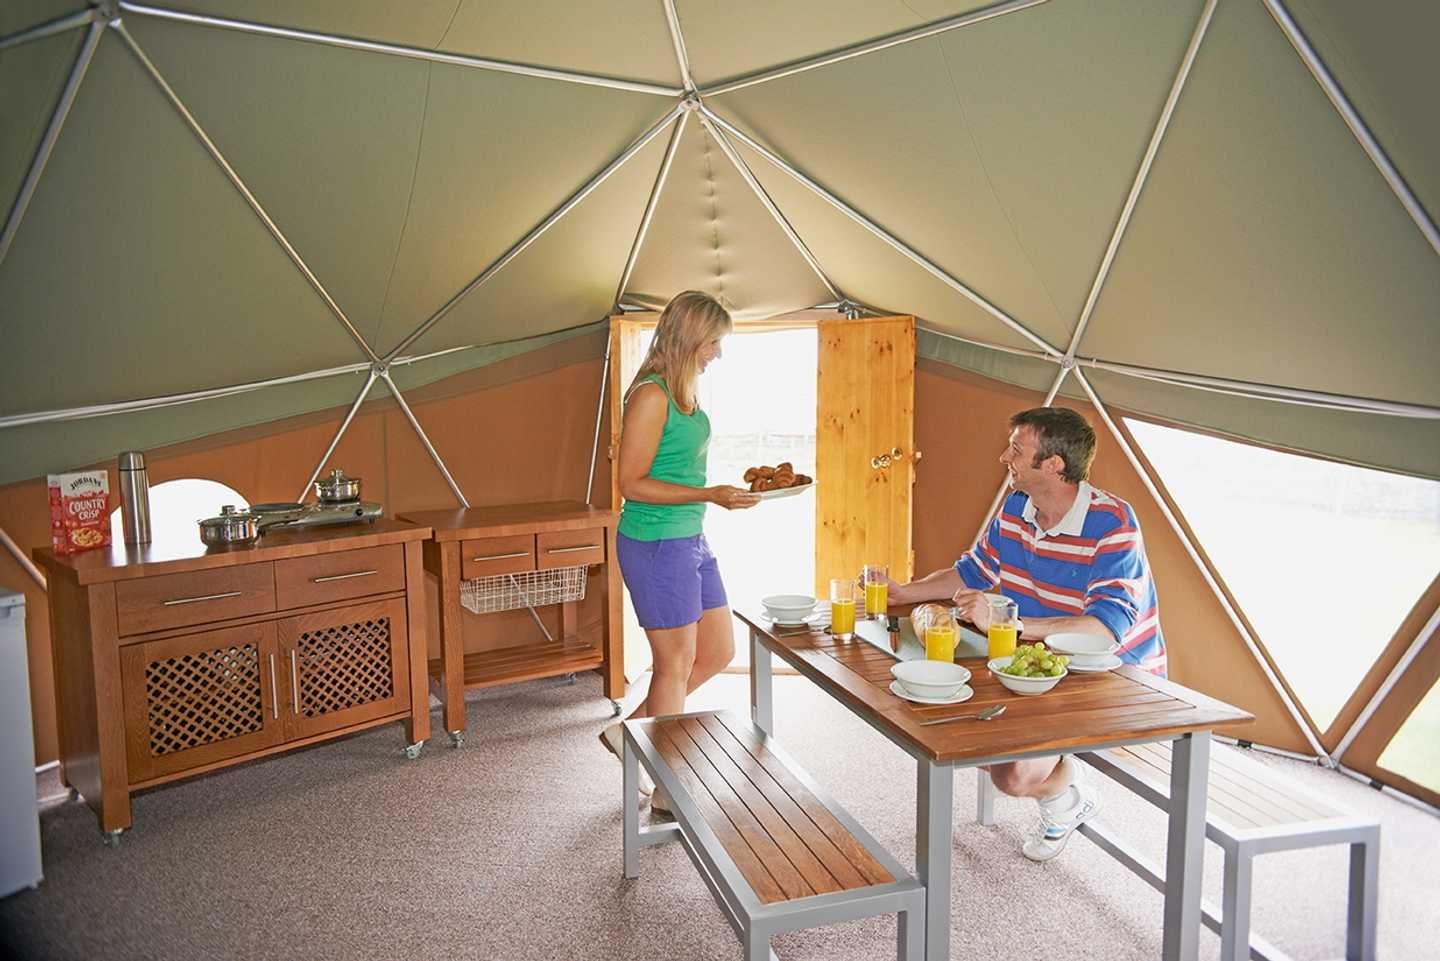 A couple eating breakfast at the table in a Geo Dome